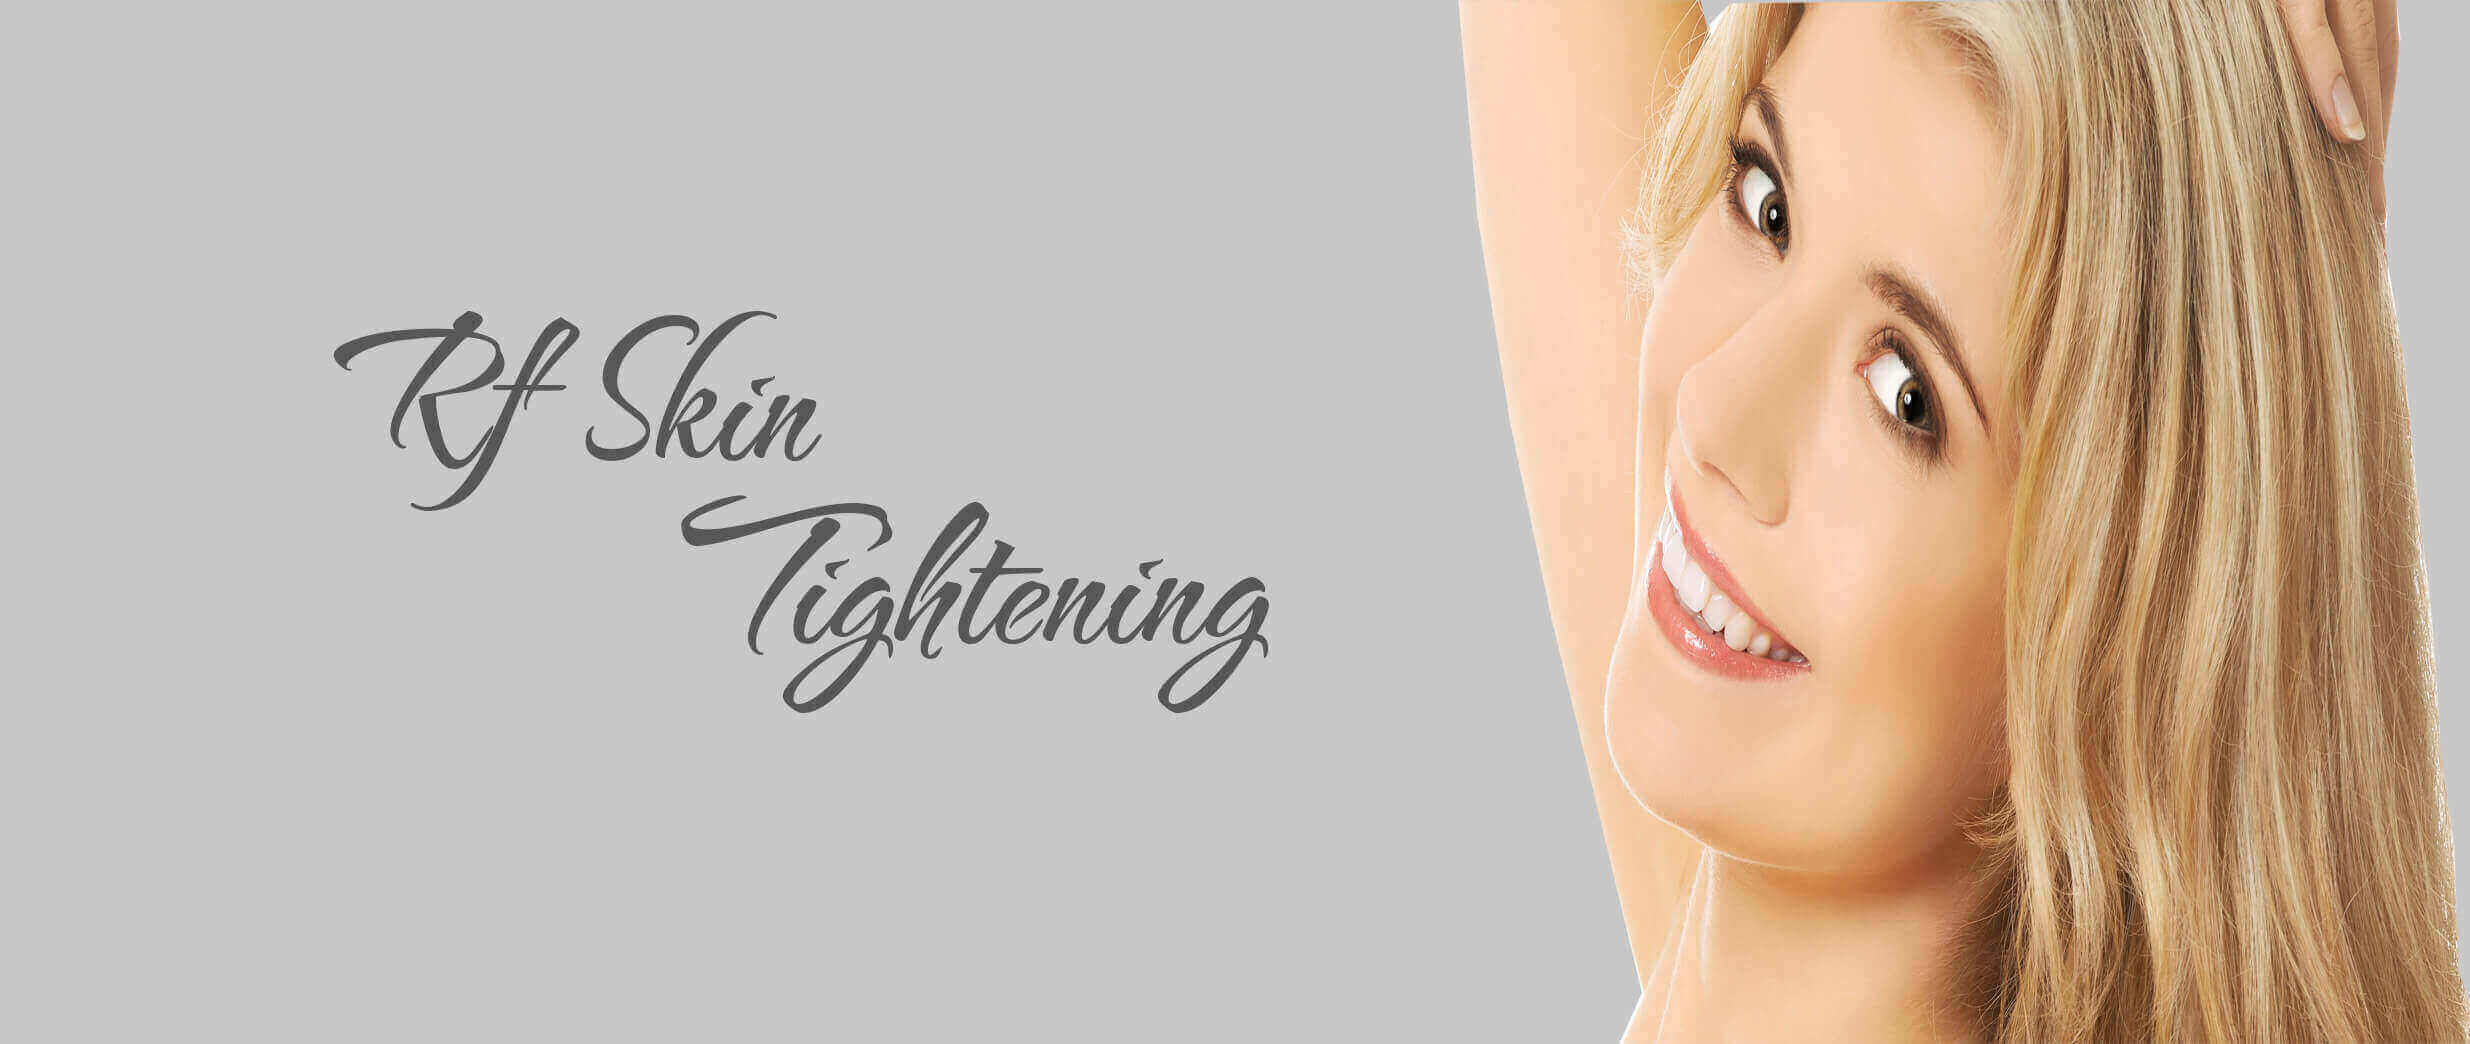 skin tightening treatment in Delhi